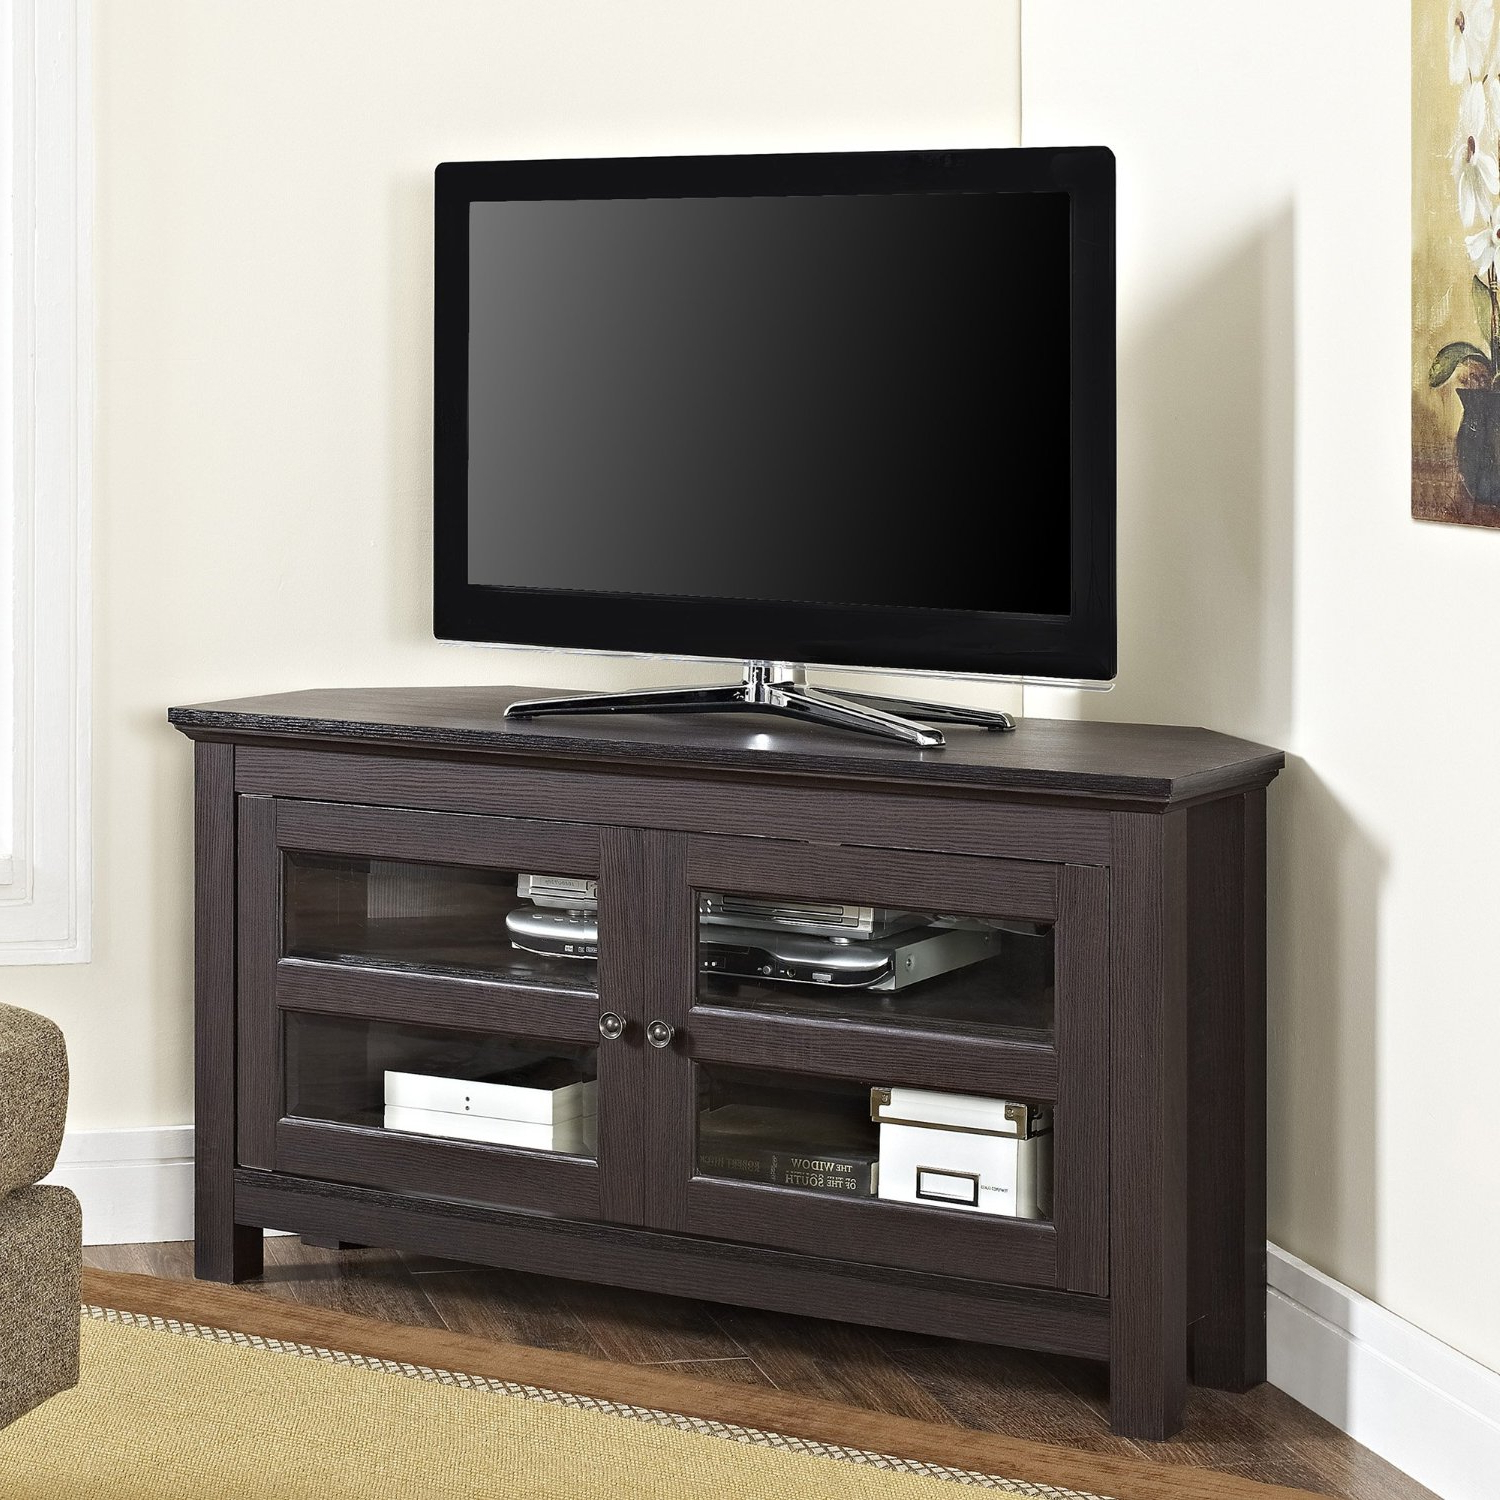 Fashionable 60 Inch Tv Stand With Mount Ikea Hemnes Discontinued Corner Wide Low Within Low Corner Tv Stands (View 5 of 20)